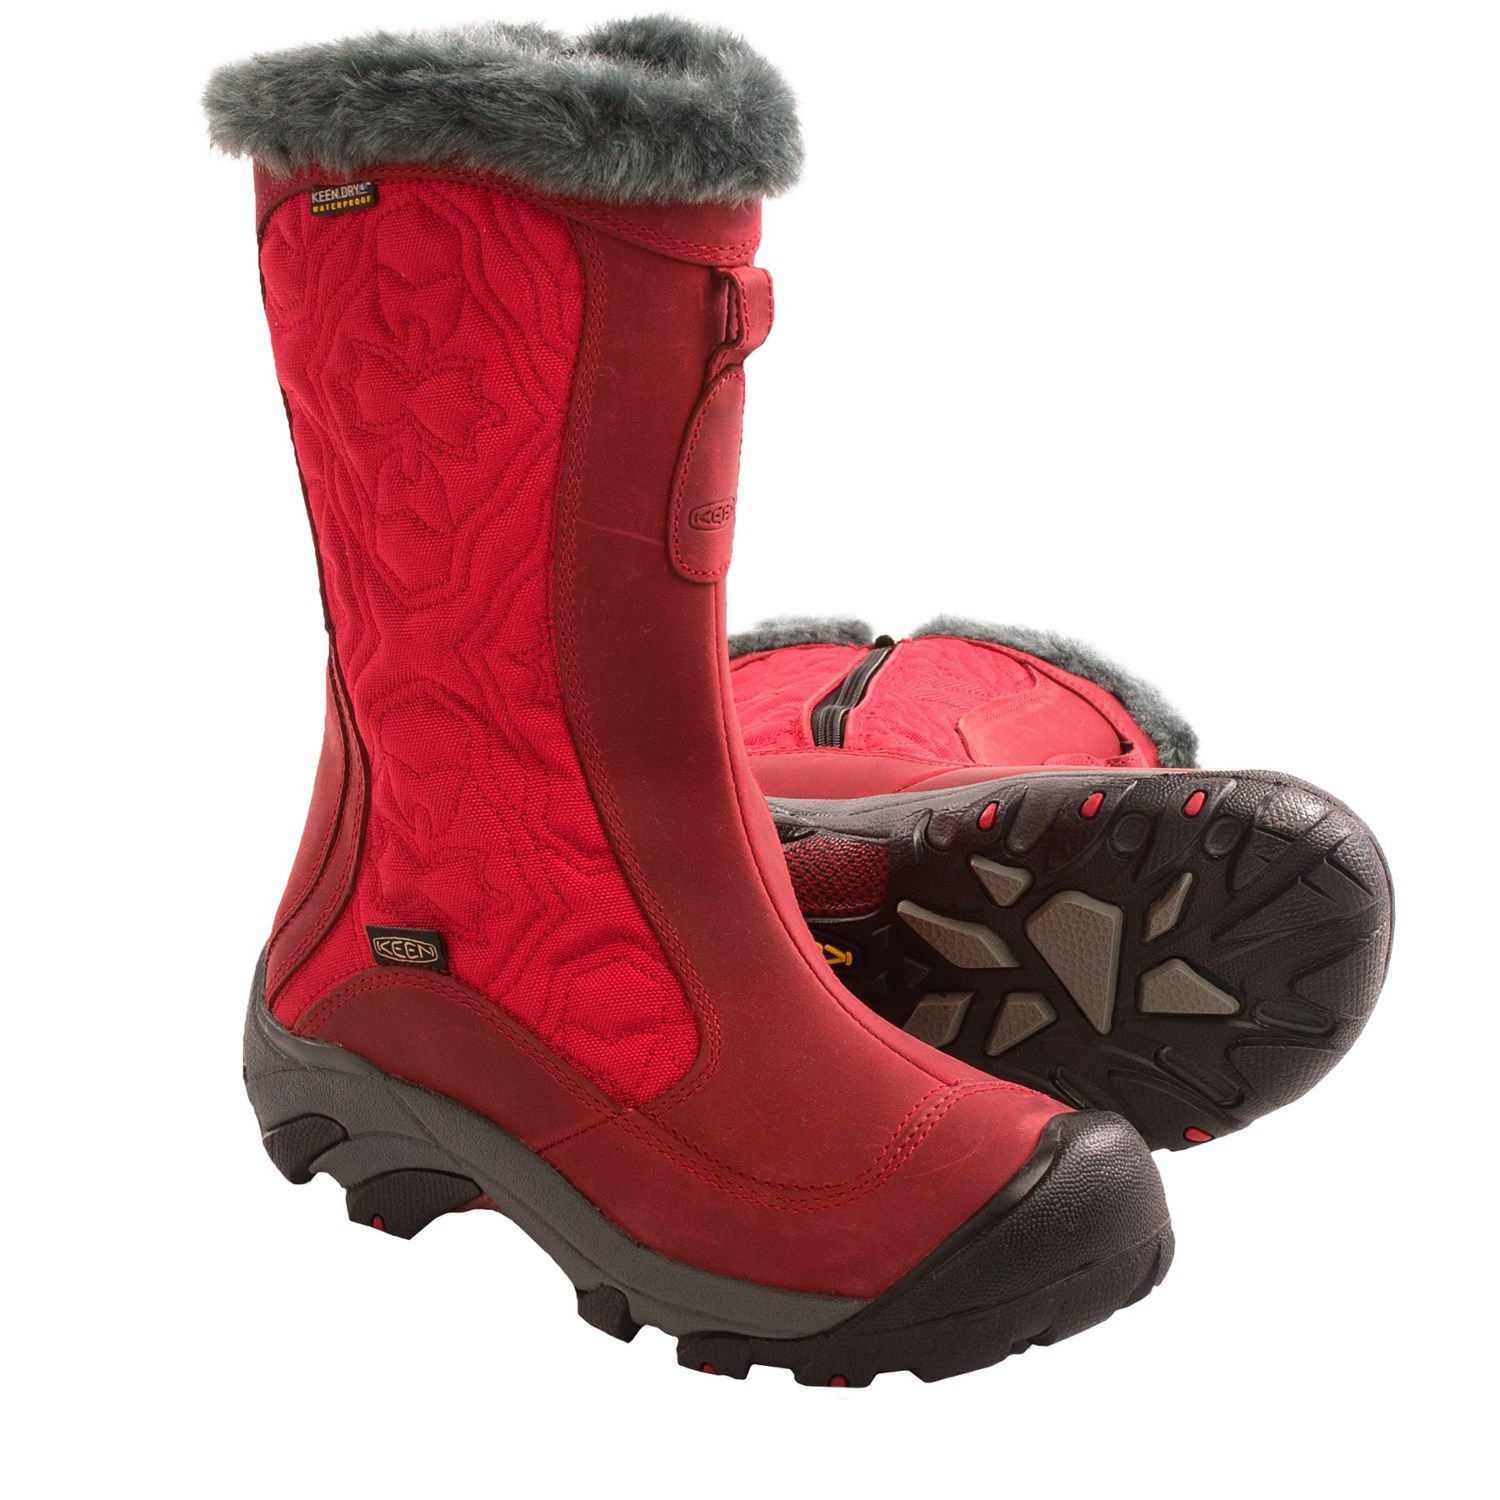 keen snow boots images